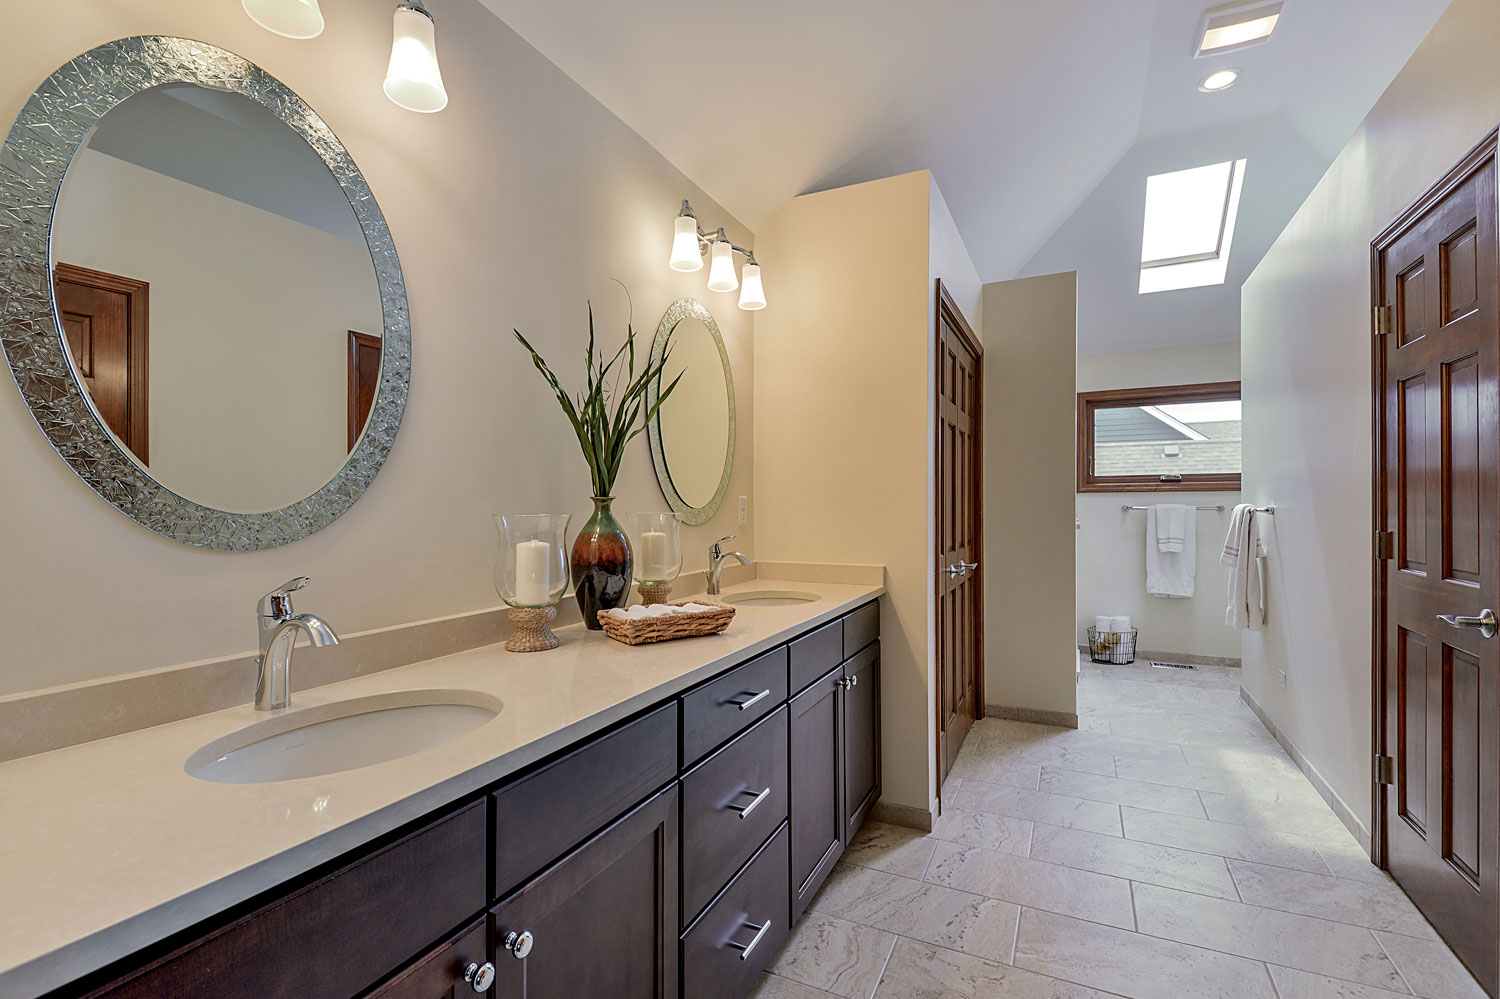 Bathroom Remodeling Naperville home design ideas. naperville home remodeling contractor bathroom